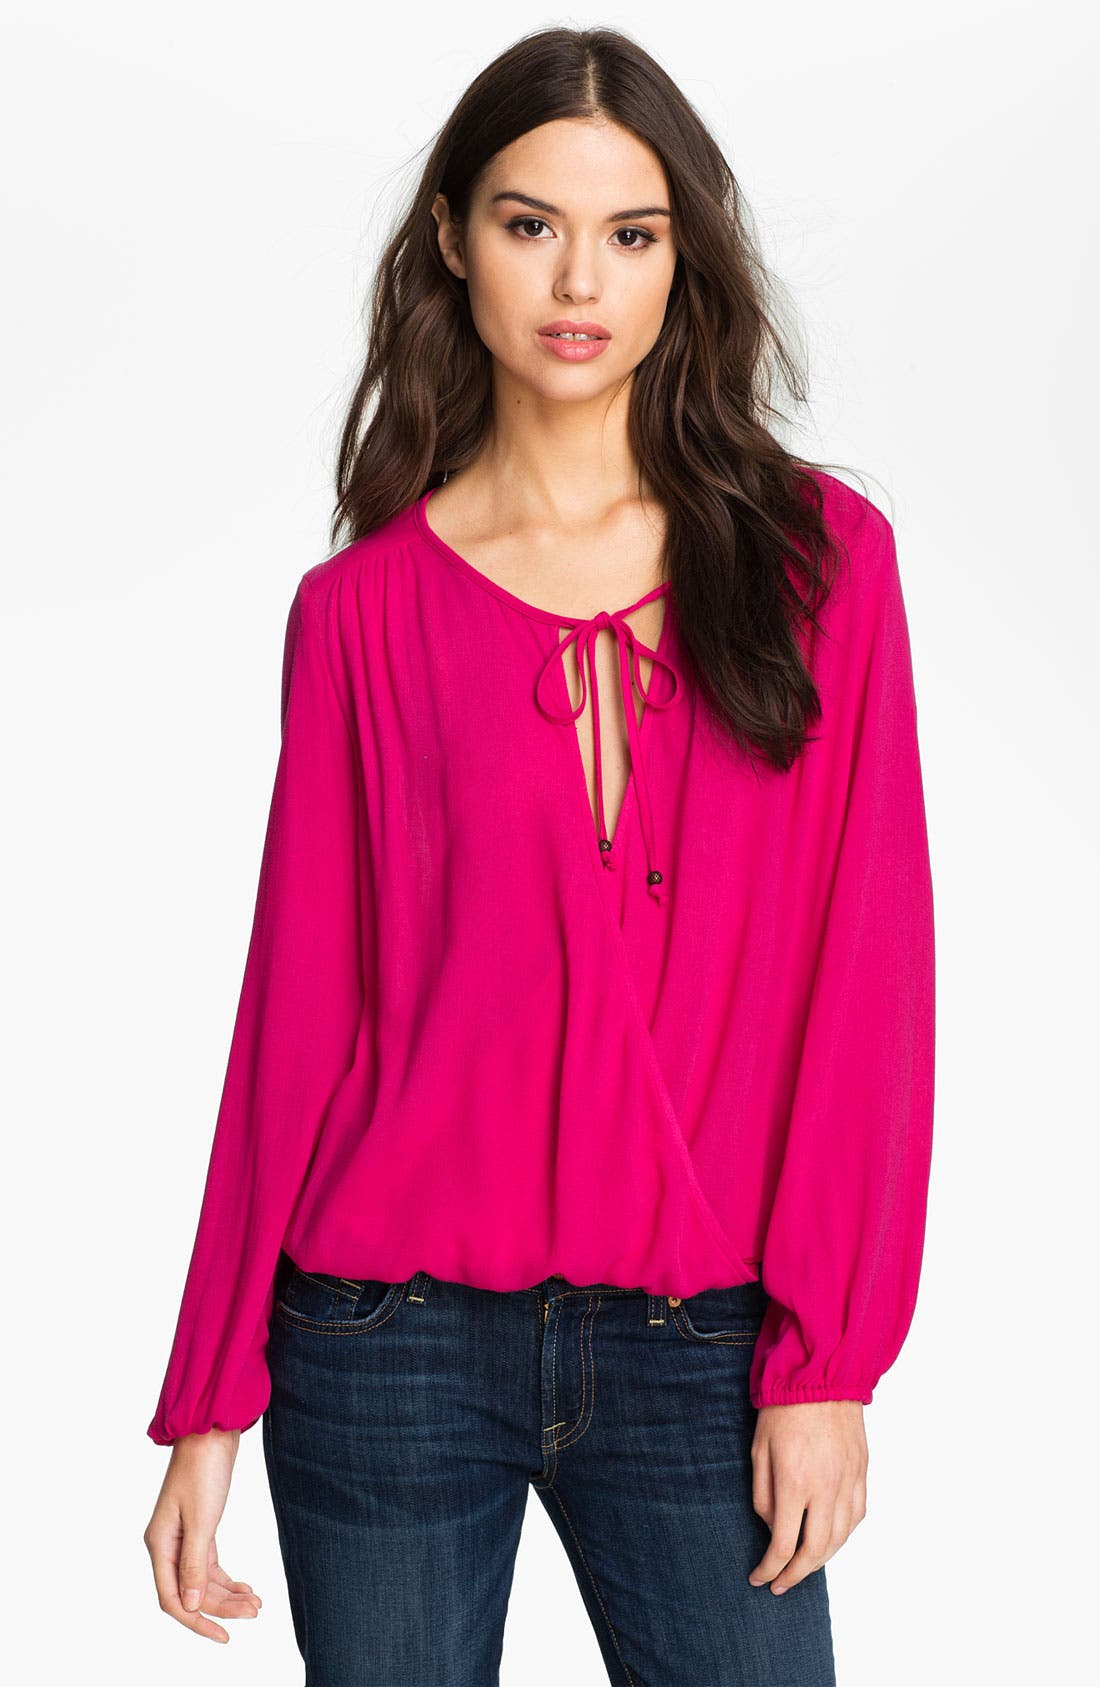 Main Image - Ella Moss 'Stella' Tie Neck Surplice Top